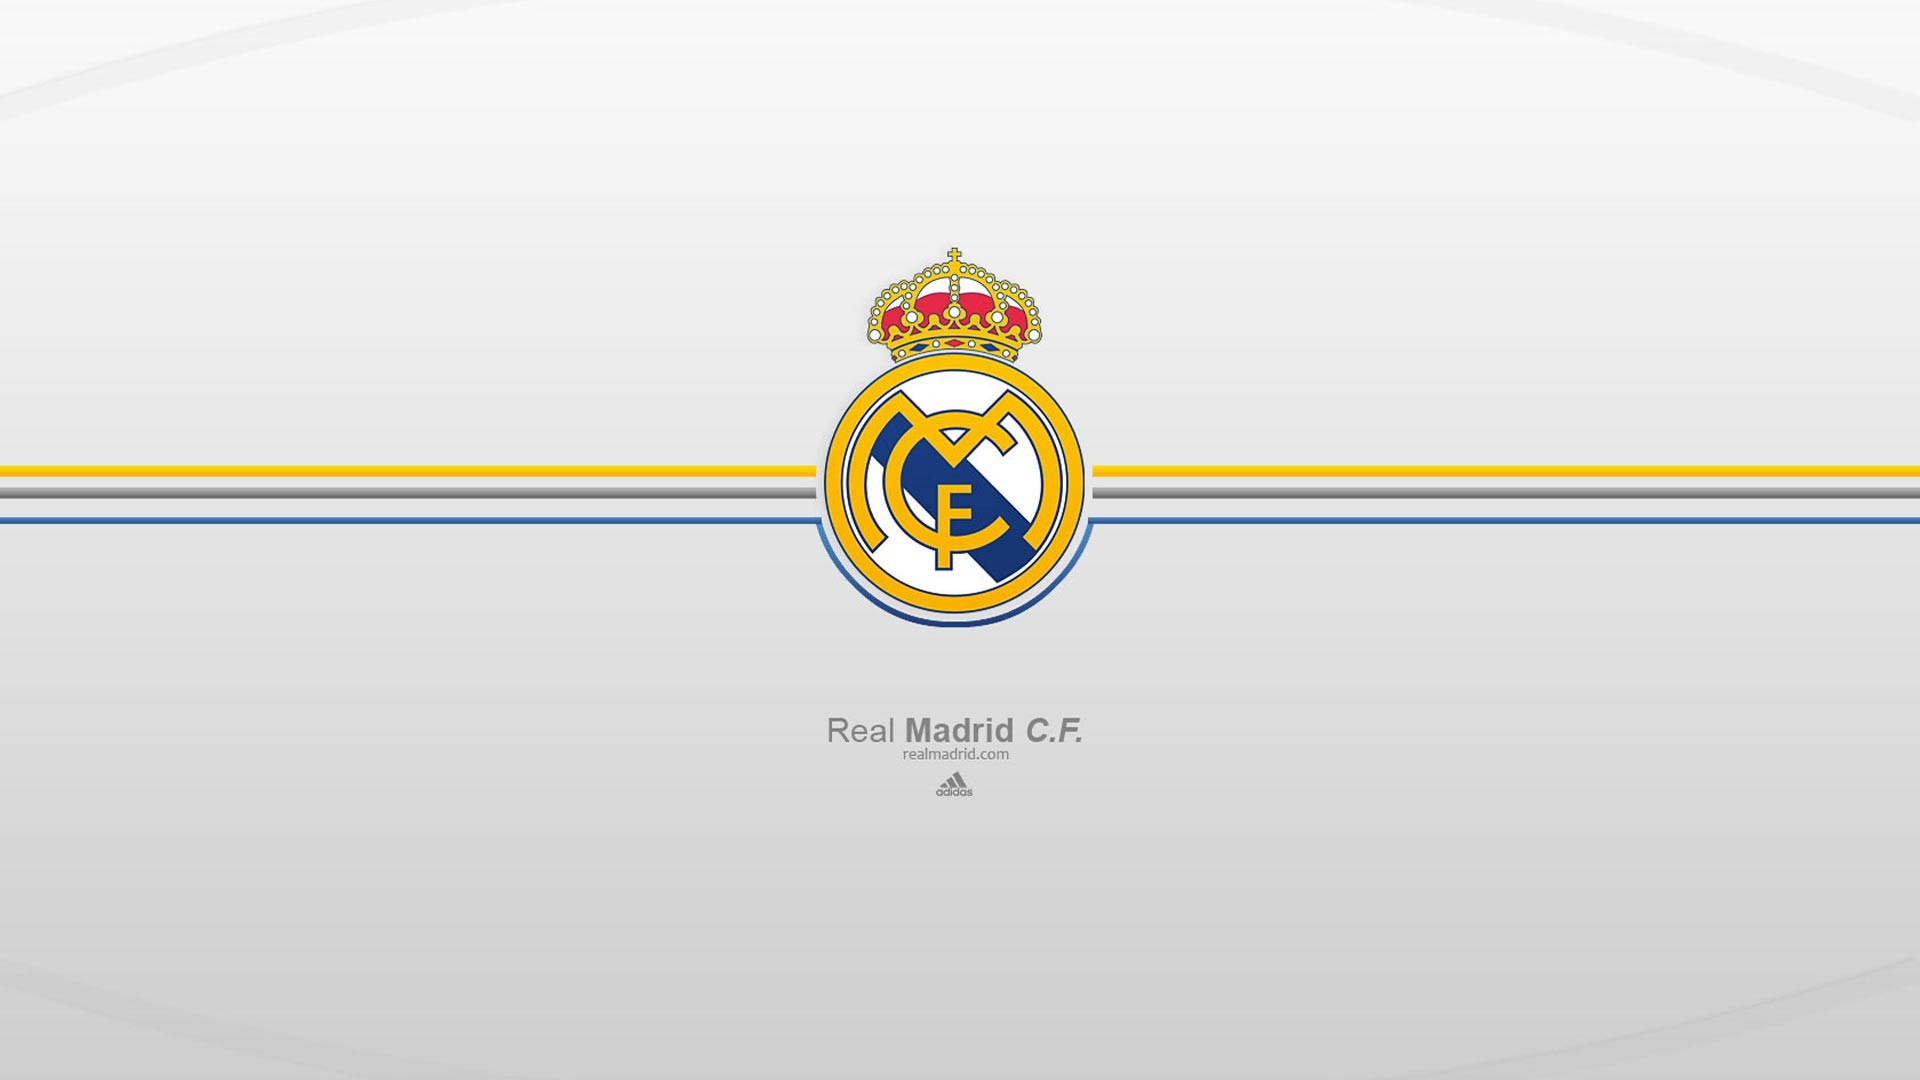 Real Madrid HD Wallpaper 2018 64 images 1920x1080